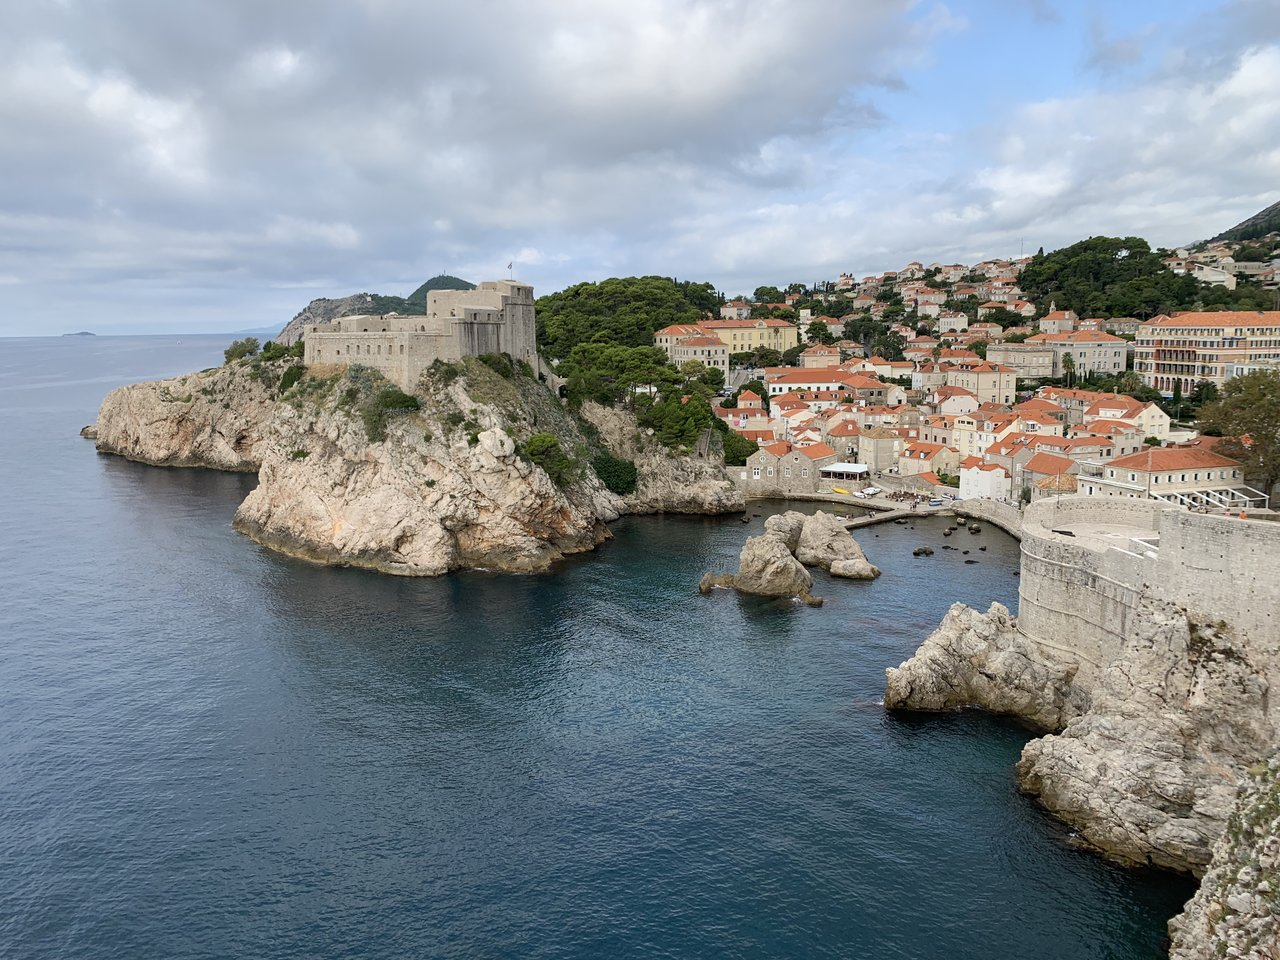 Dubrovnik (fortress and wall) | Photo taken by Eva W